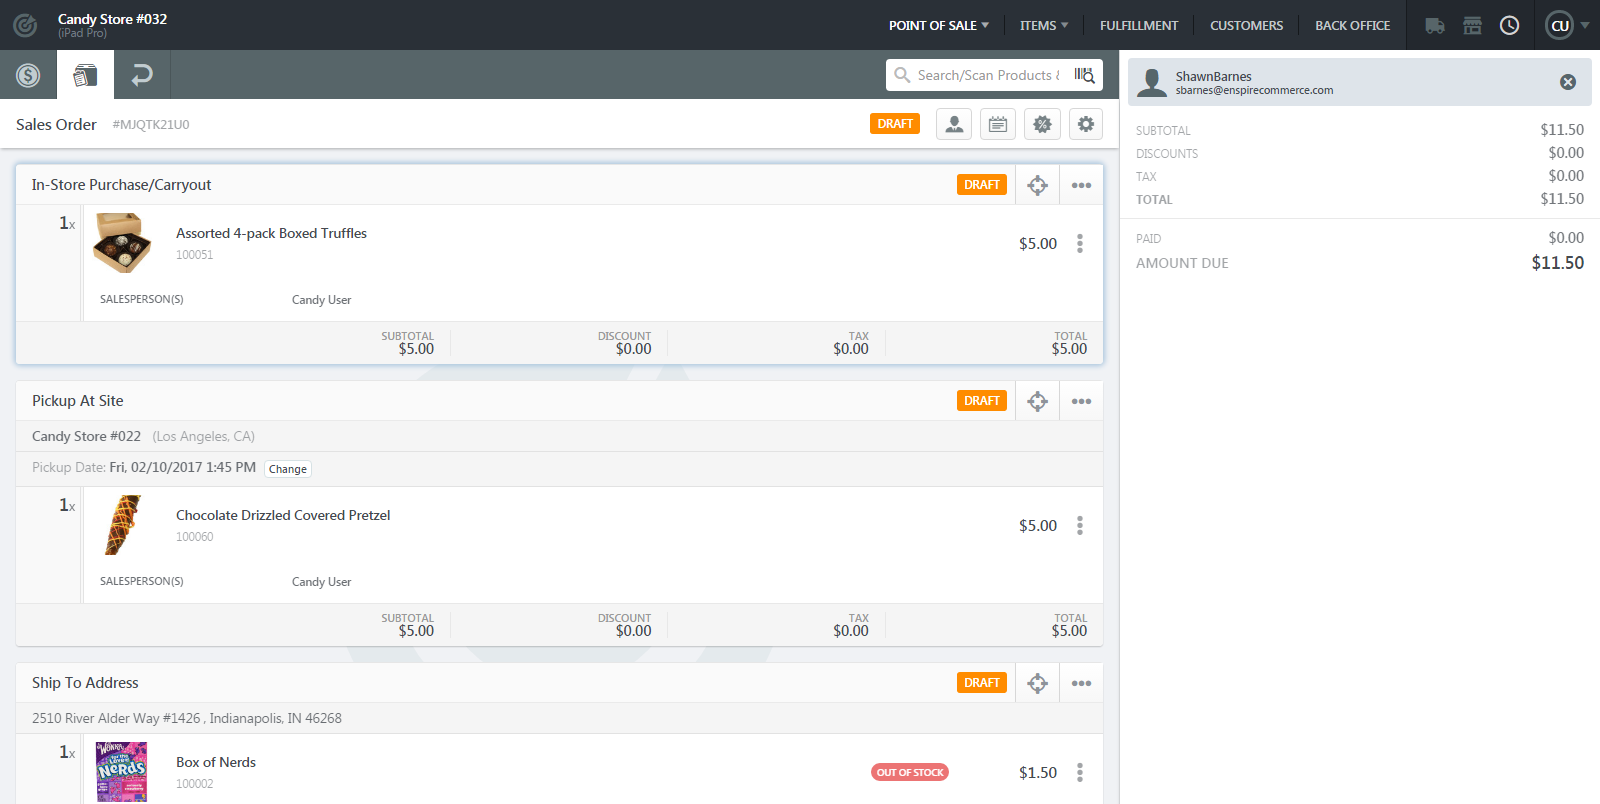 RetailPoint Feature Spotlight: Itemized Orders and Receipts